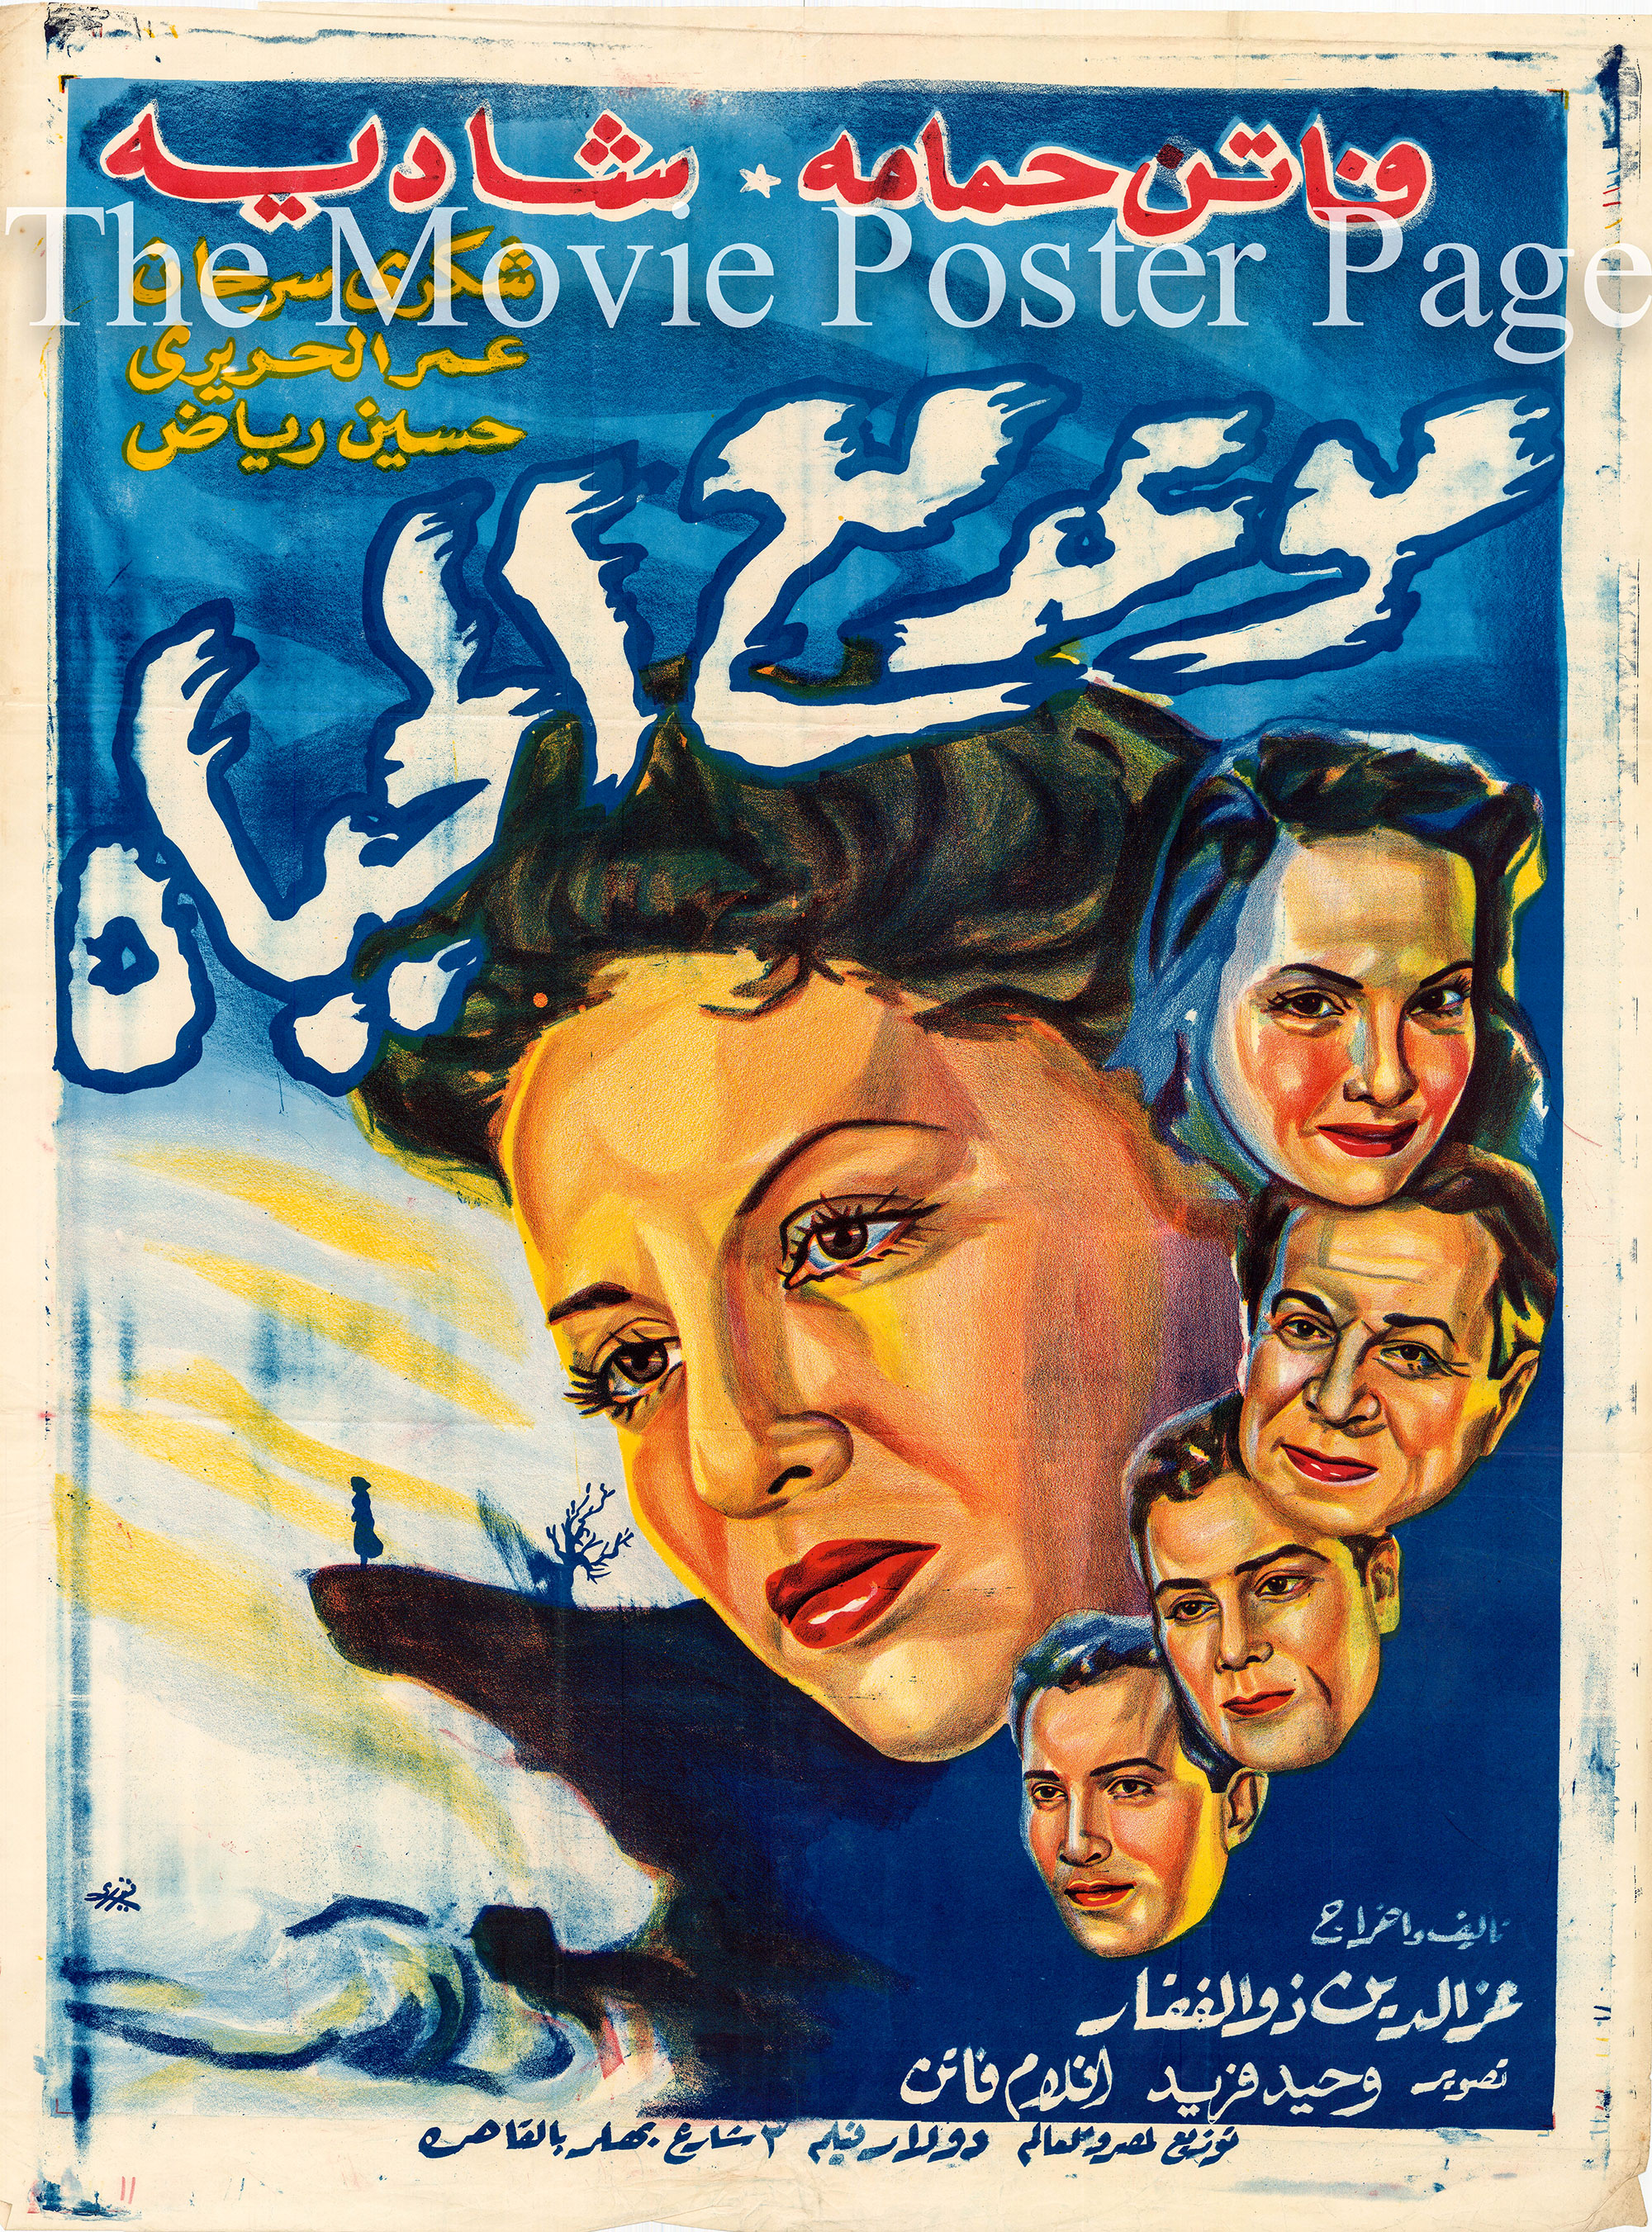 Pictured is an Egyptian promotional poster for the 1954 Ezzel Dine Zulficar film Appointment with Life starring Faten Hamama.